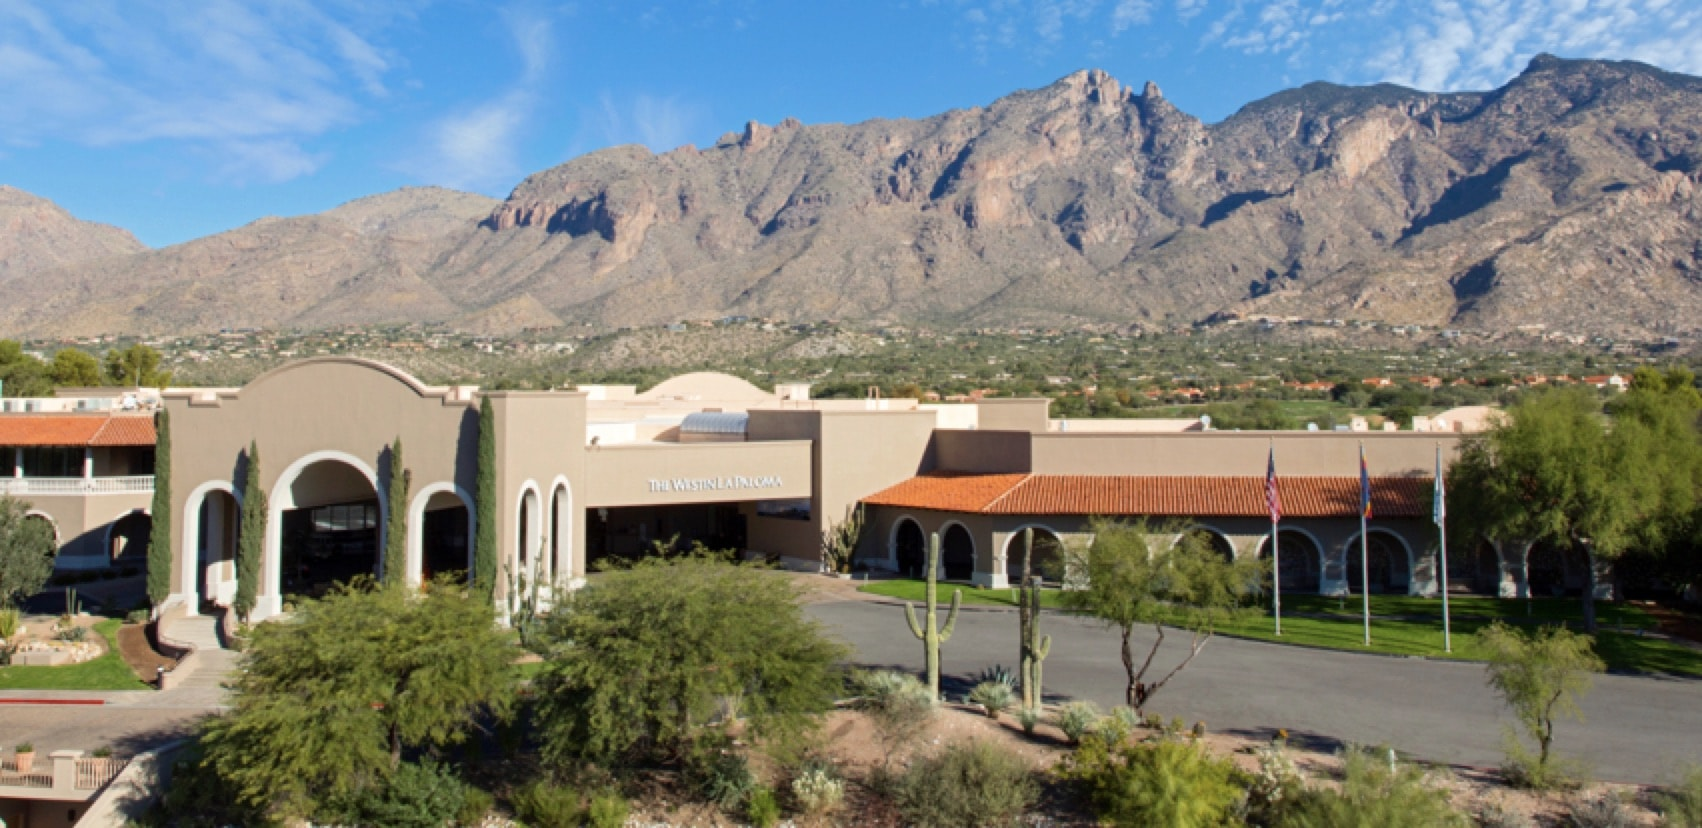 Westin La Paloma will be the venue for the 2019 INMR WORLD CONGRESS inmr world congress Plan to Attend the 2019 INMR WORLD CONGRESS Plan to Attend the 2019 INMR WORLD CONGRESS